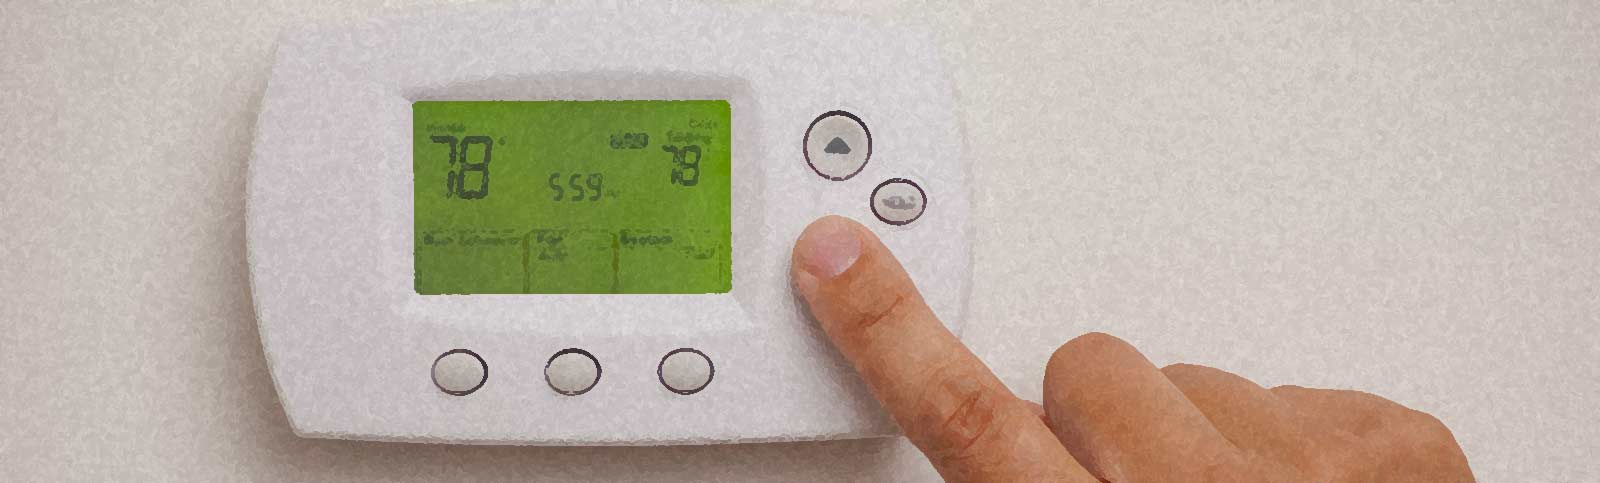 5 Tips for Optimal Heating During Cold Months